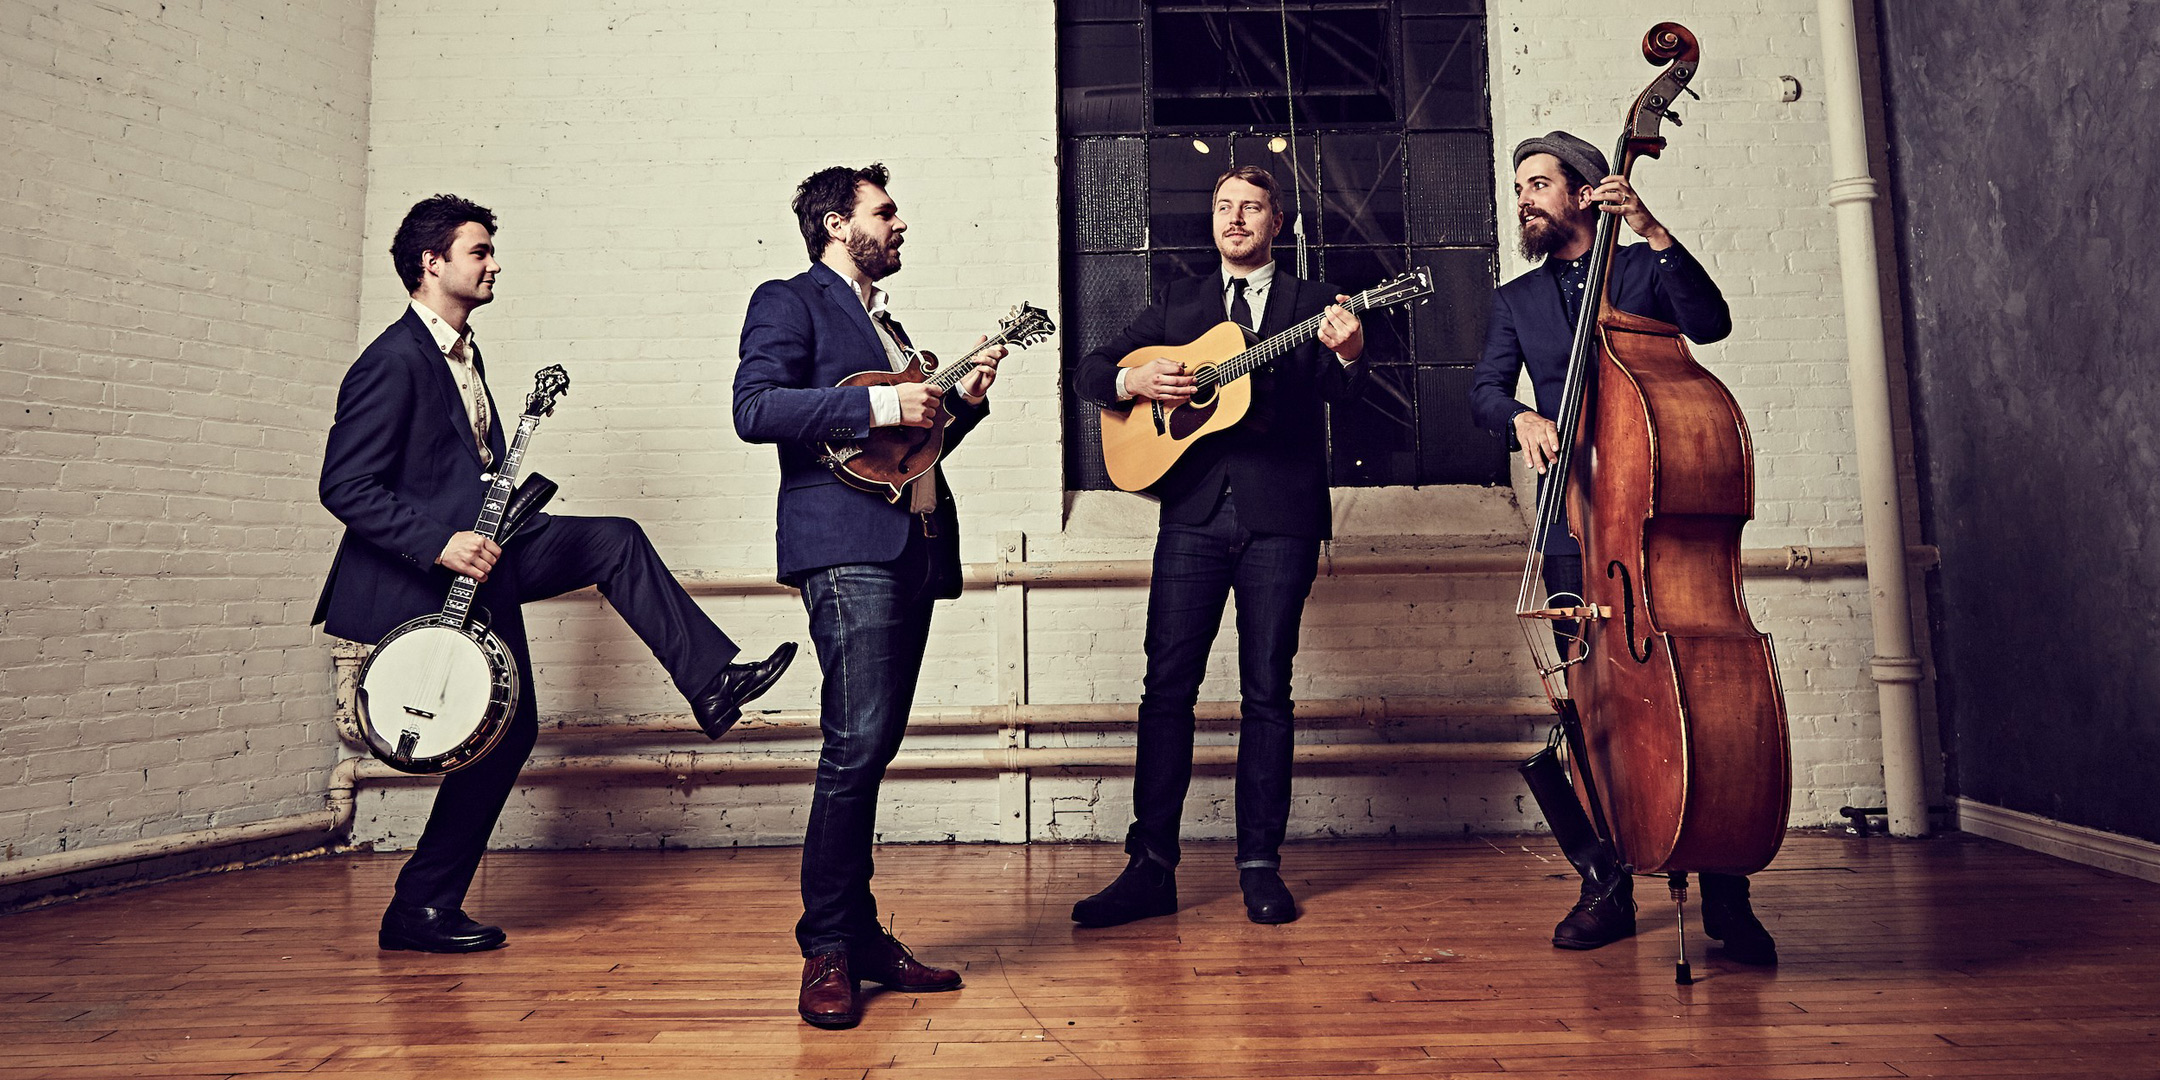 The Show On The Road - The Slocan Ramblers